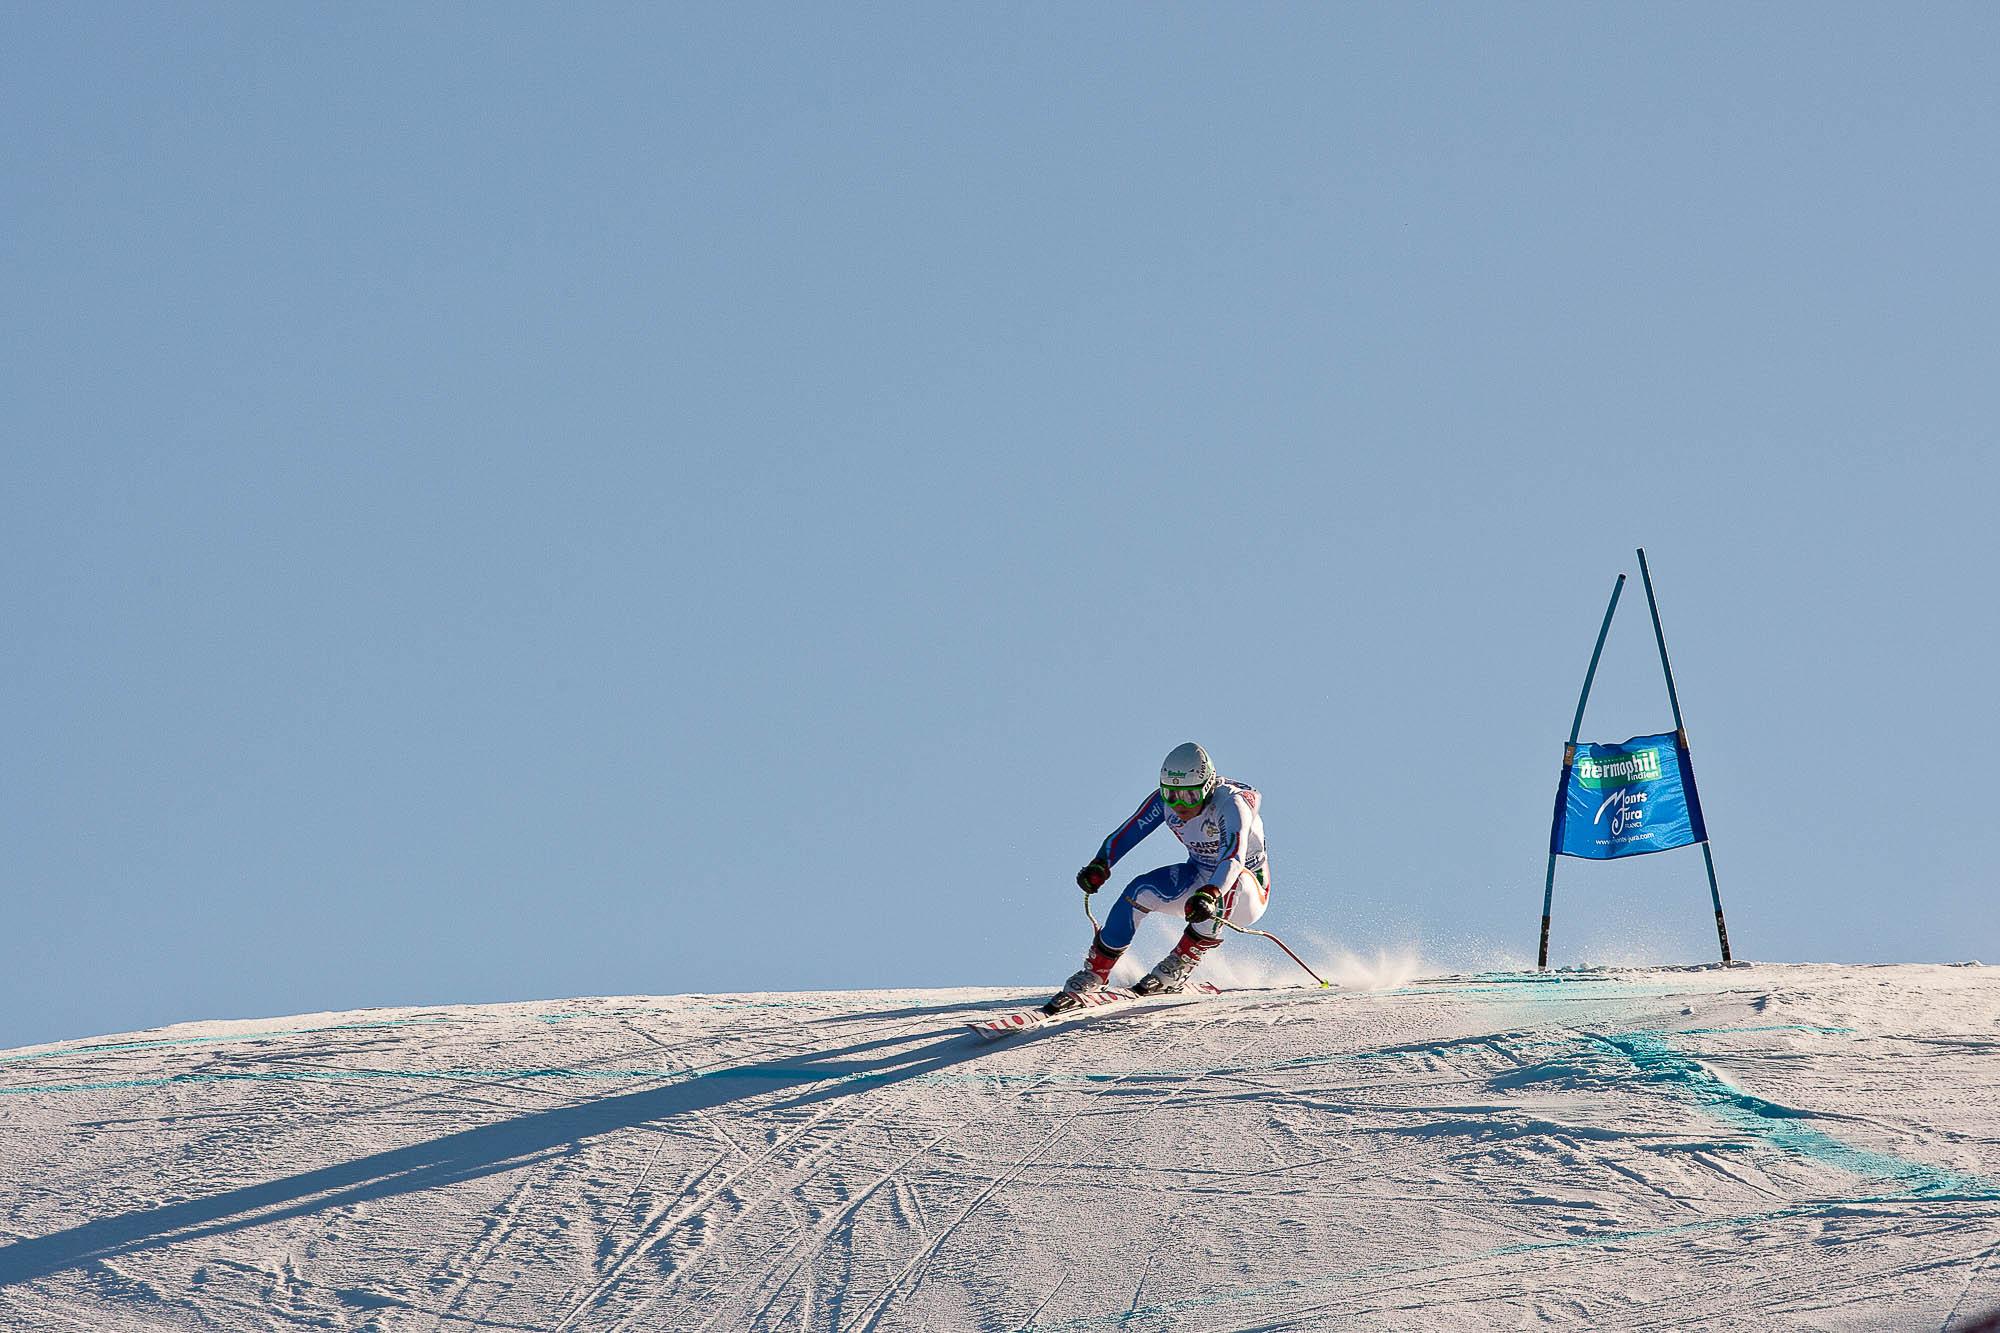 Coupe_Europe_ski_dames-52.jpg